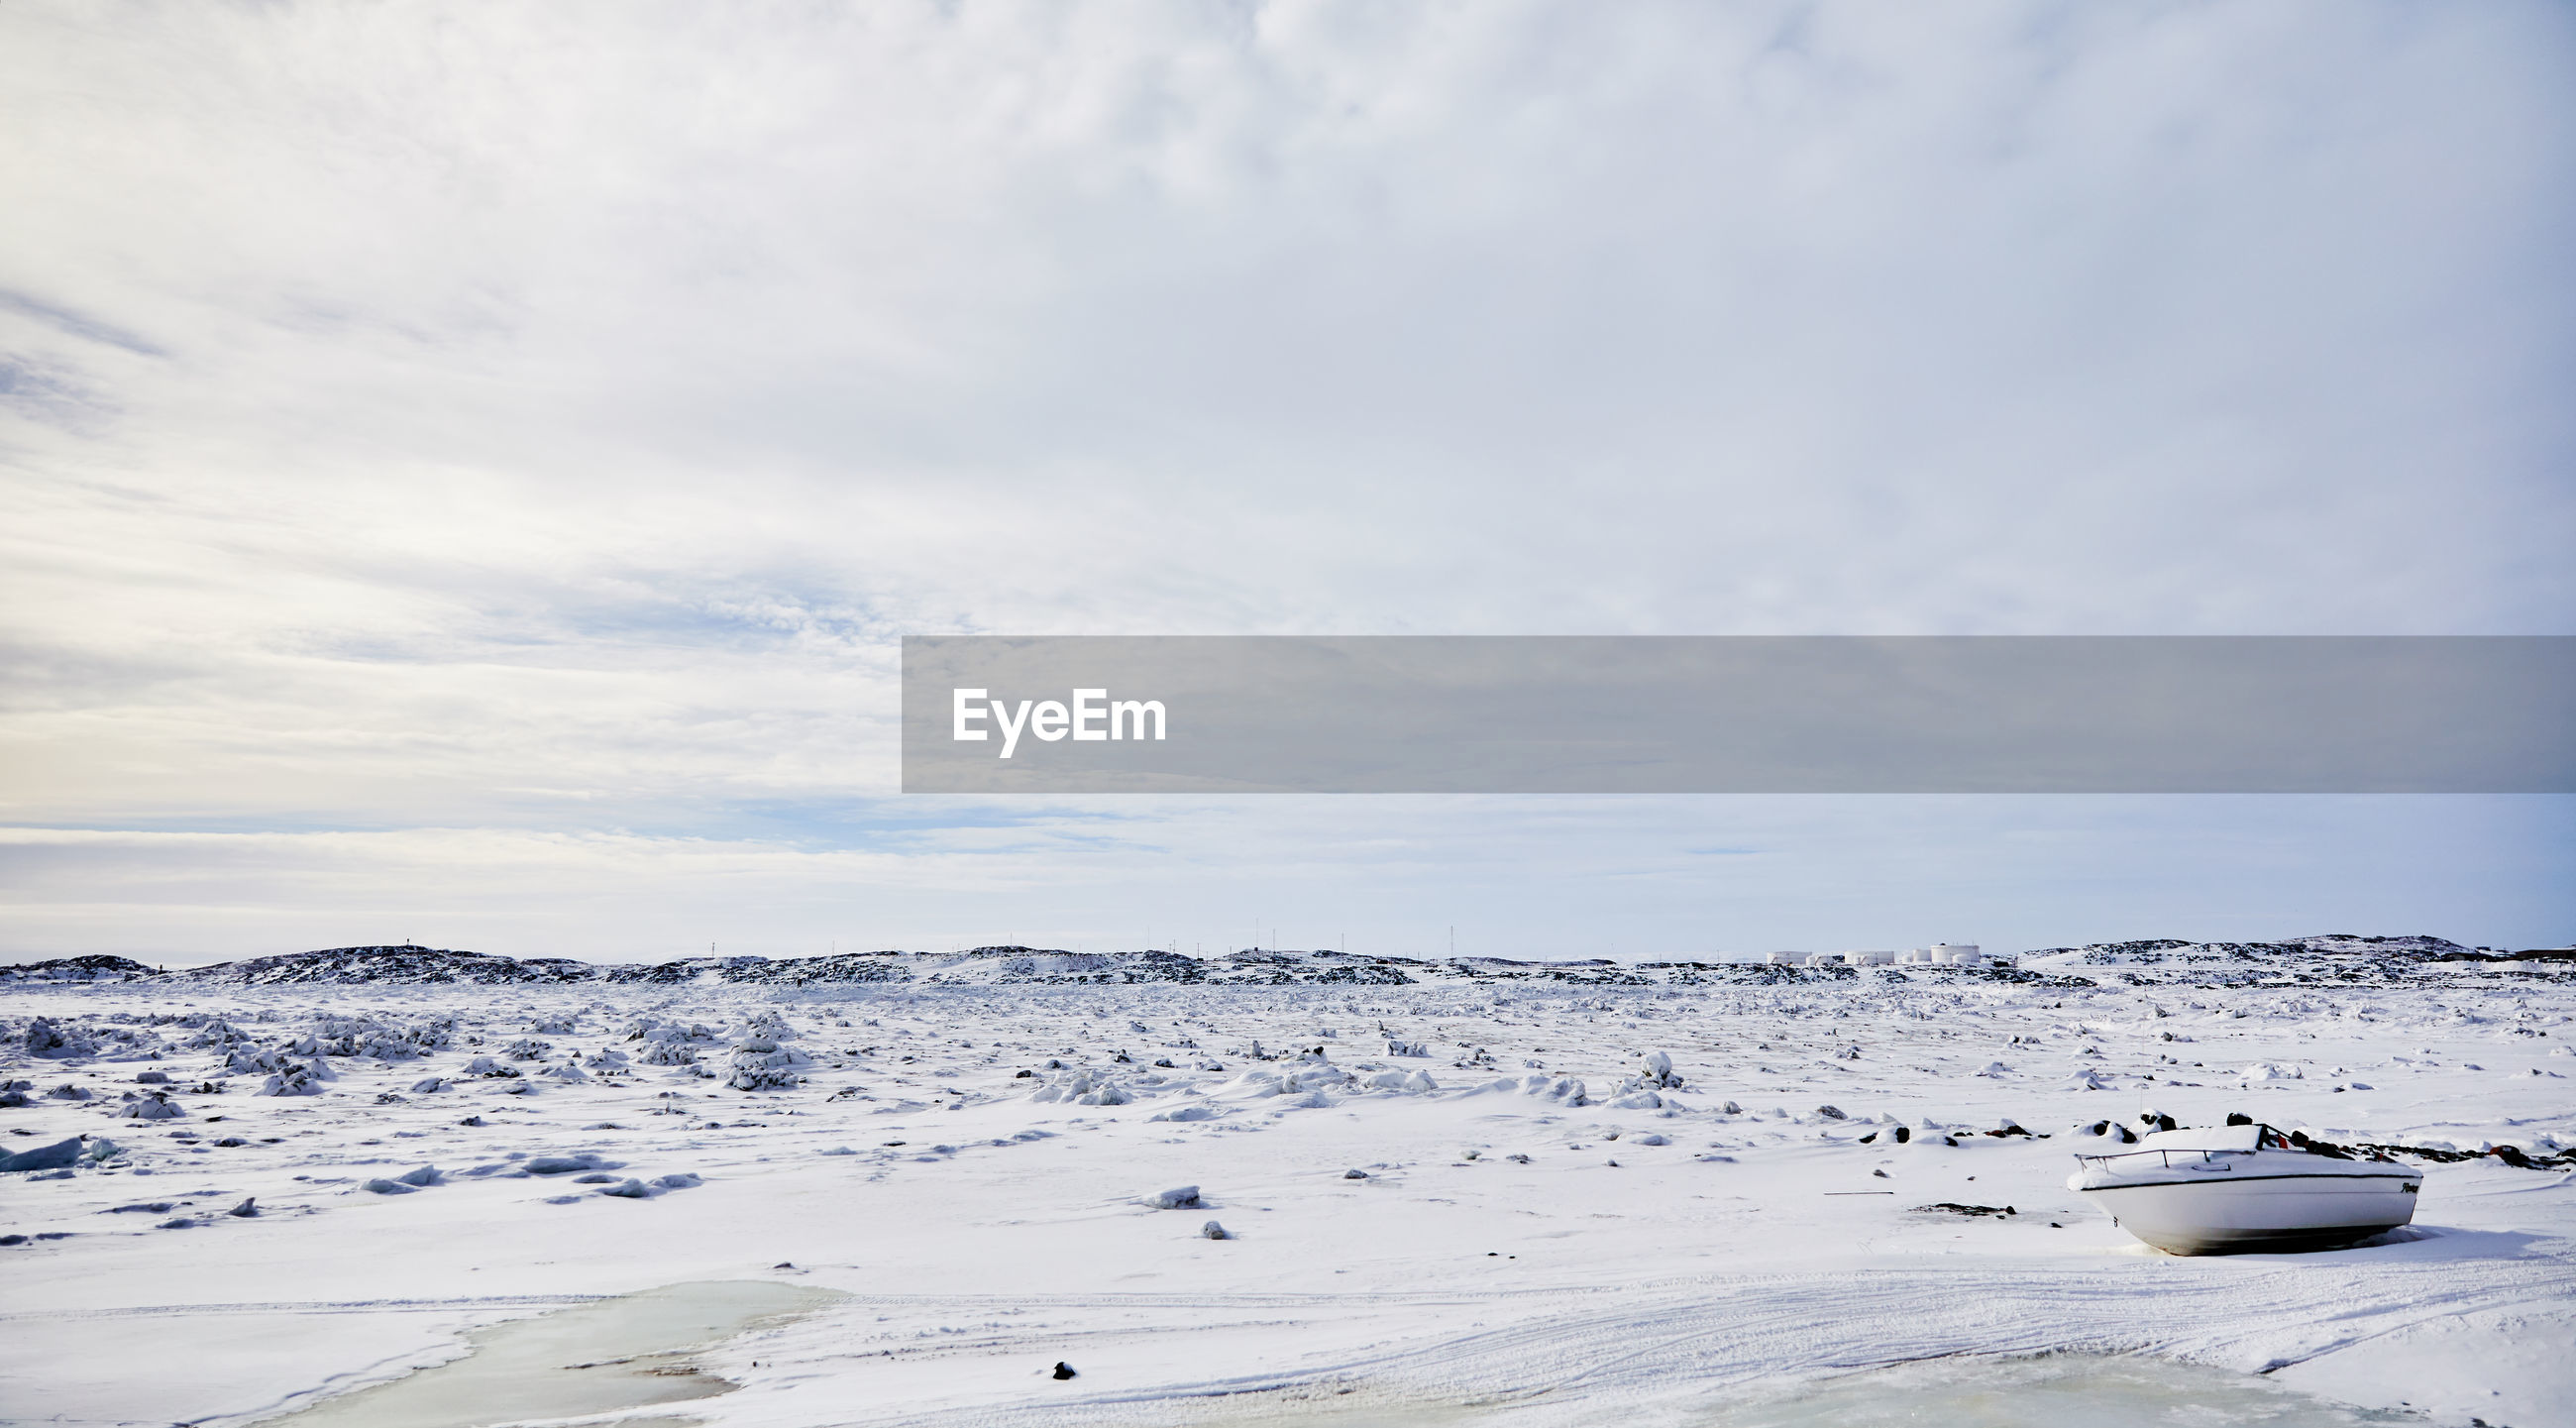 SCENIC VIEW OF SNOW AGAINST SKY